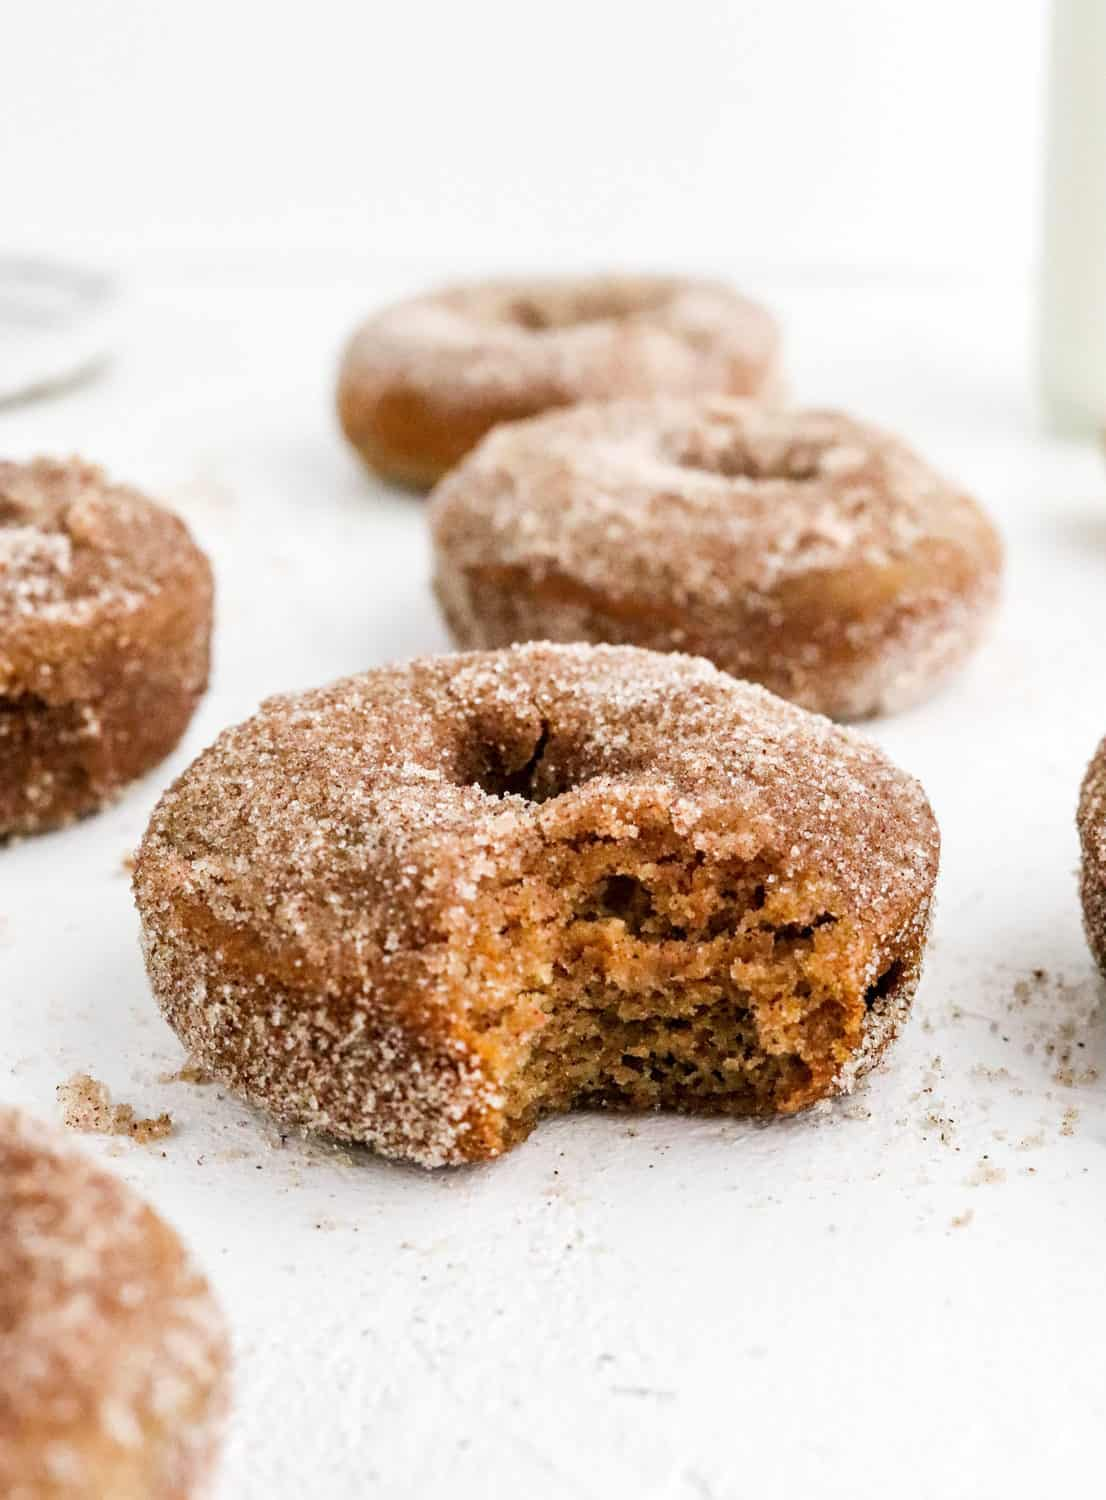 A few brown donuts with brown sugar on them with a bite taken out of one of the donuts on a white surface.